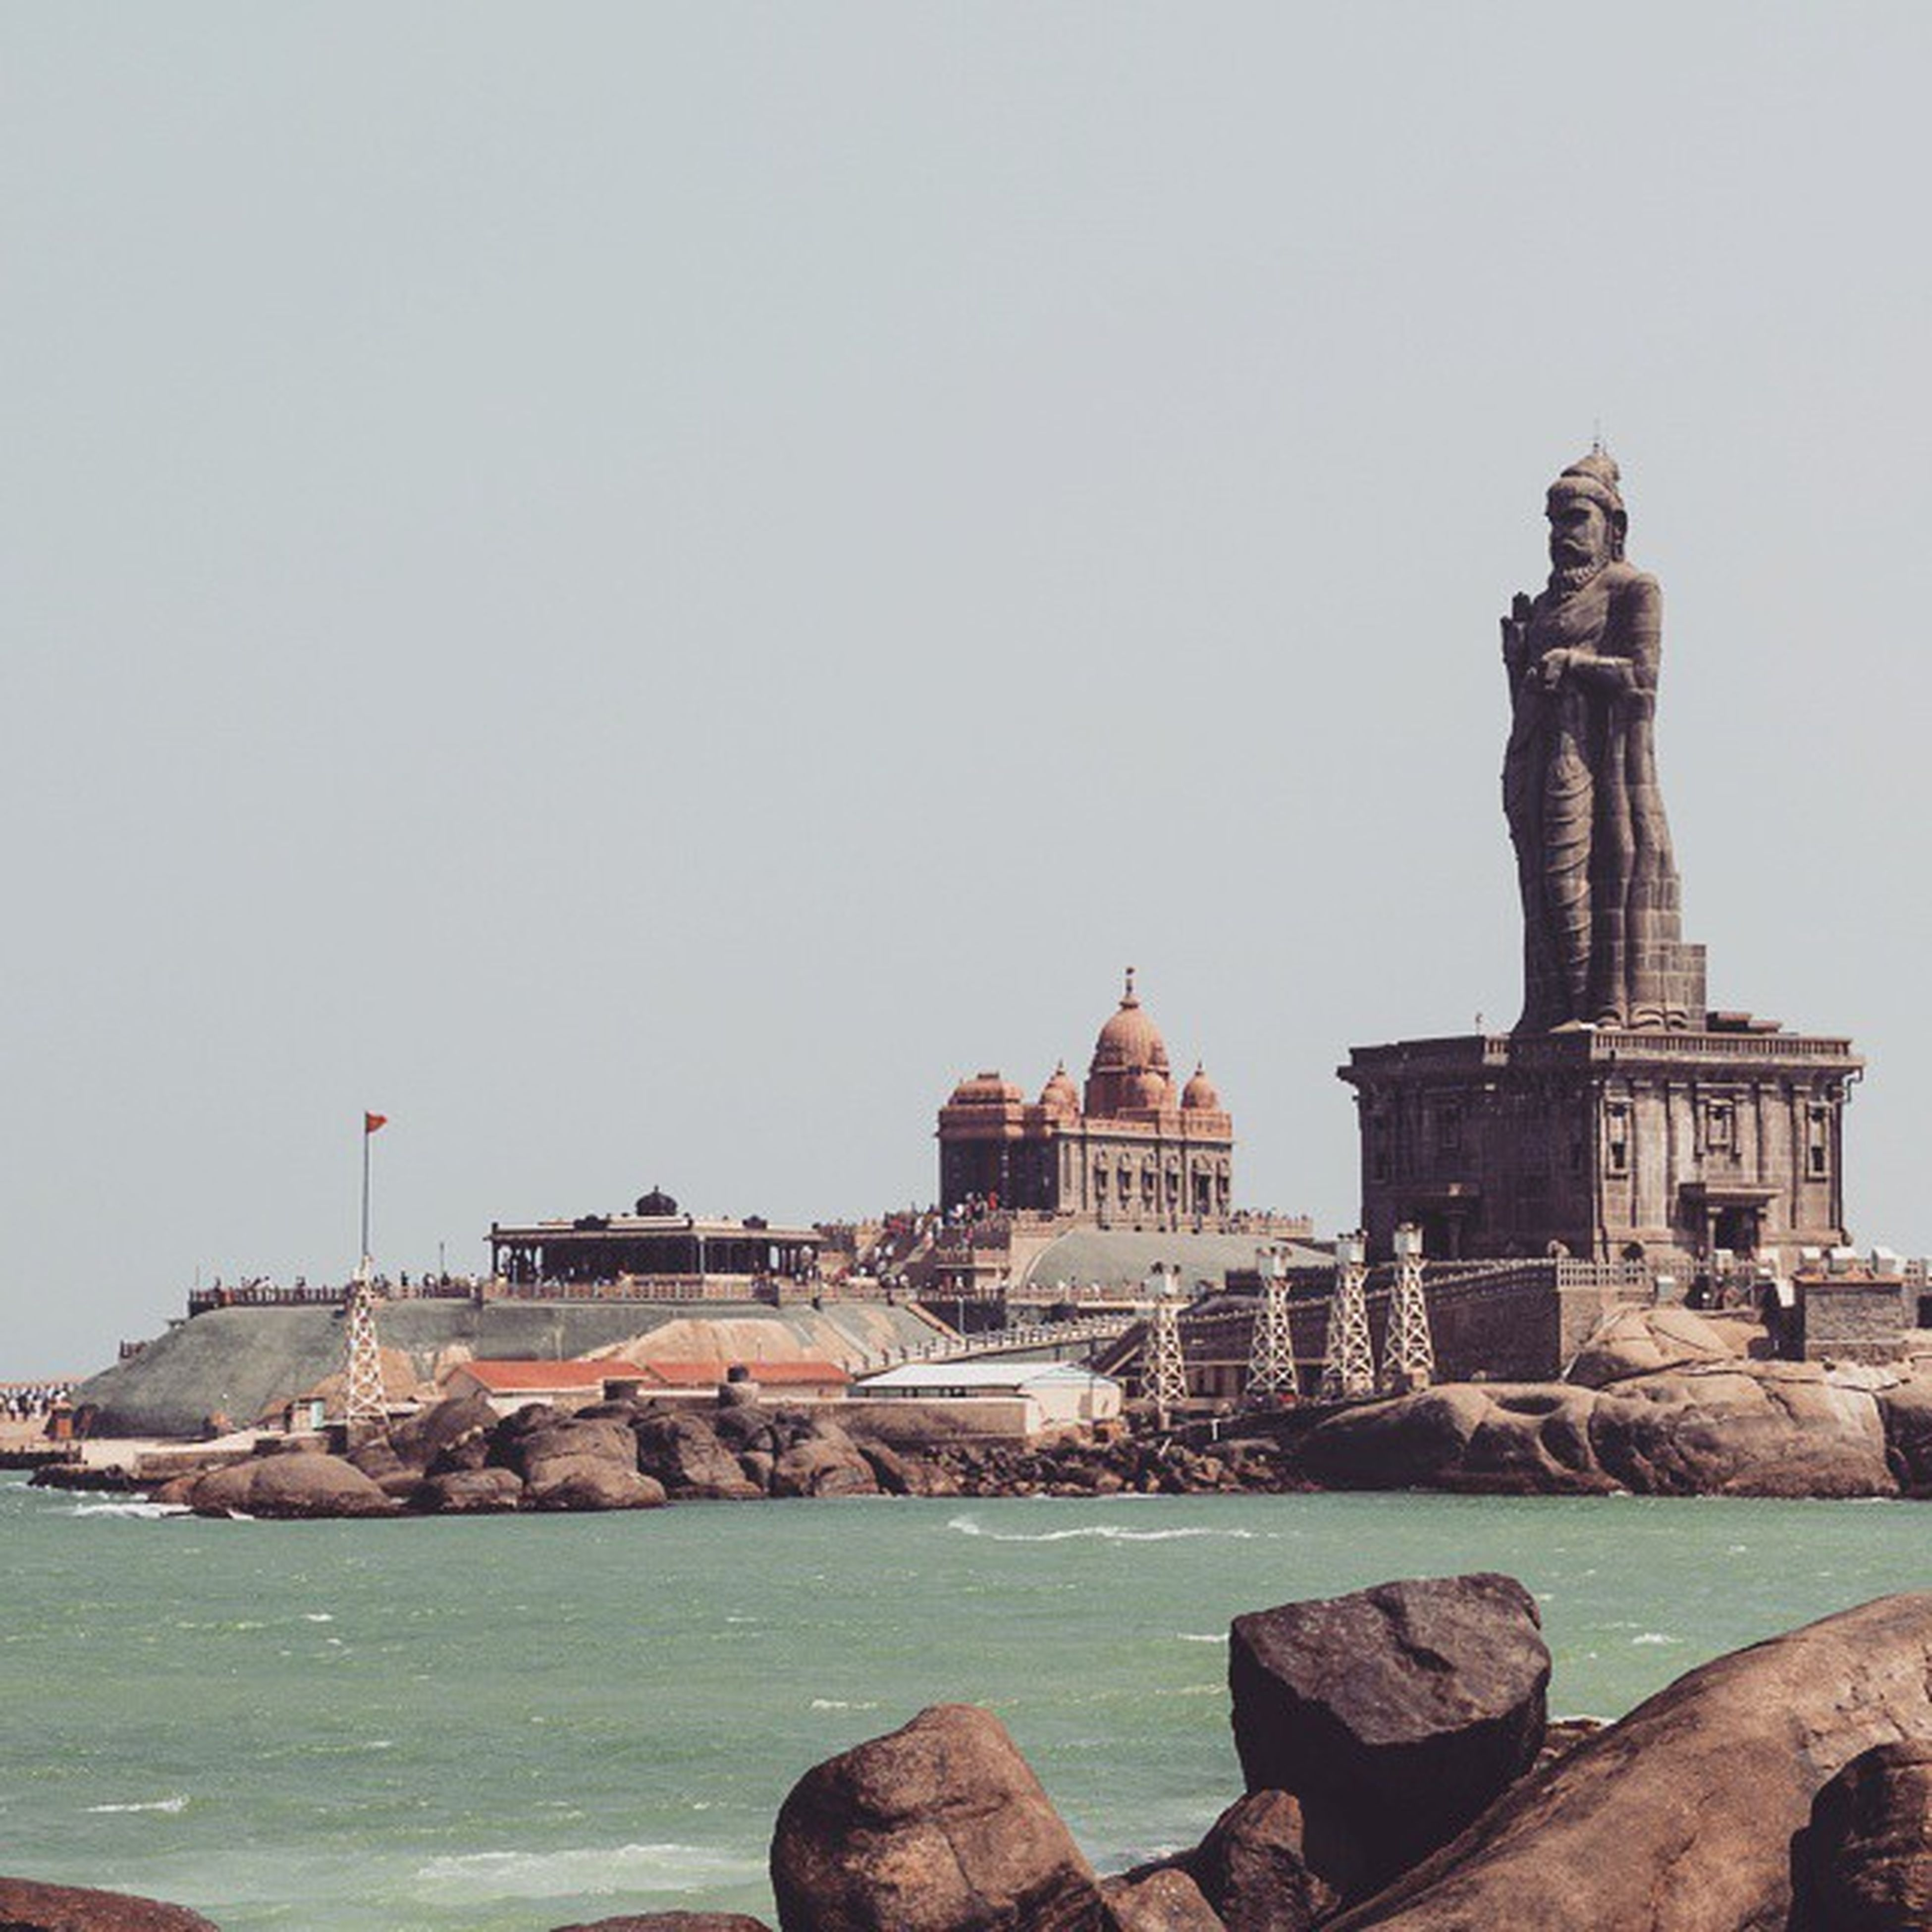 clear sky, water, architecture, copy space, built structure, building exterior, sea, rock - object, famous place, travel destinations, history, travel, day, tourism, statue, international landmark, waterfront, sculpture, outdoors, lighthouse